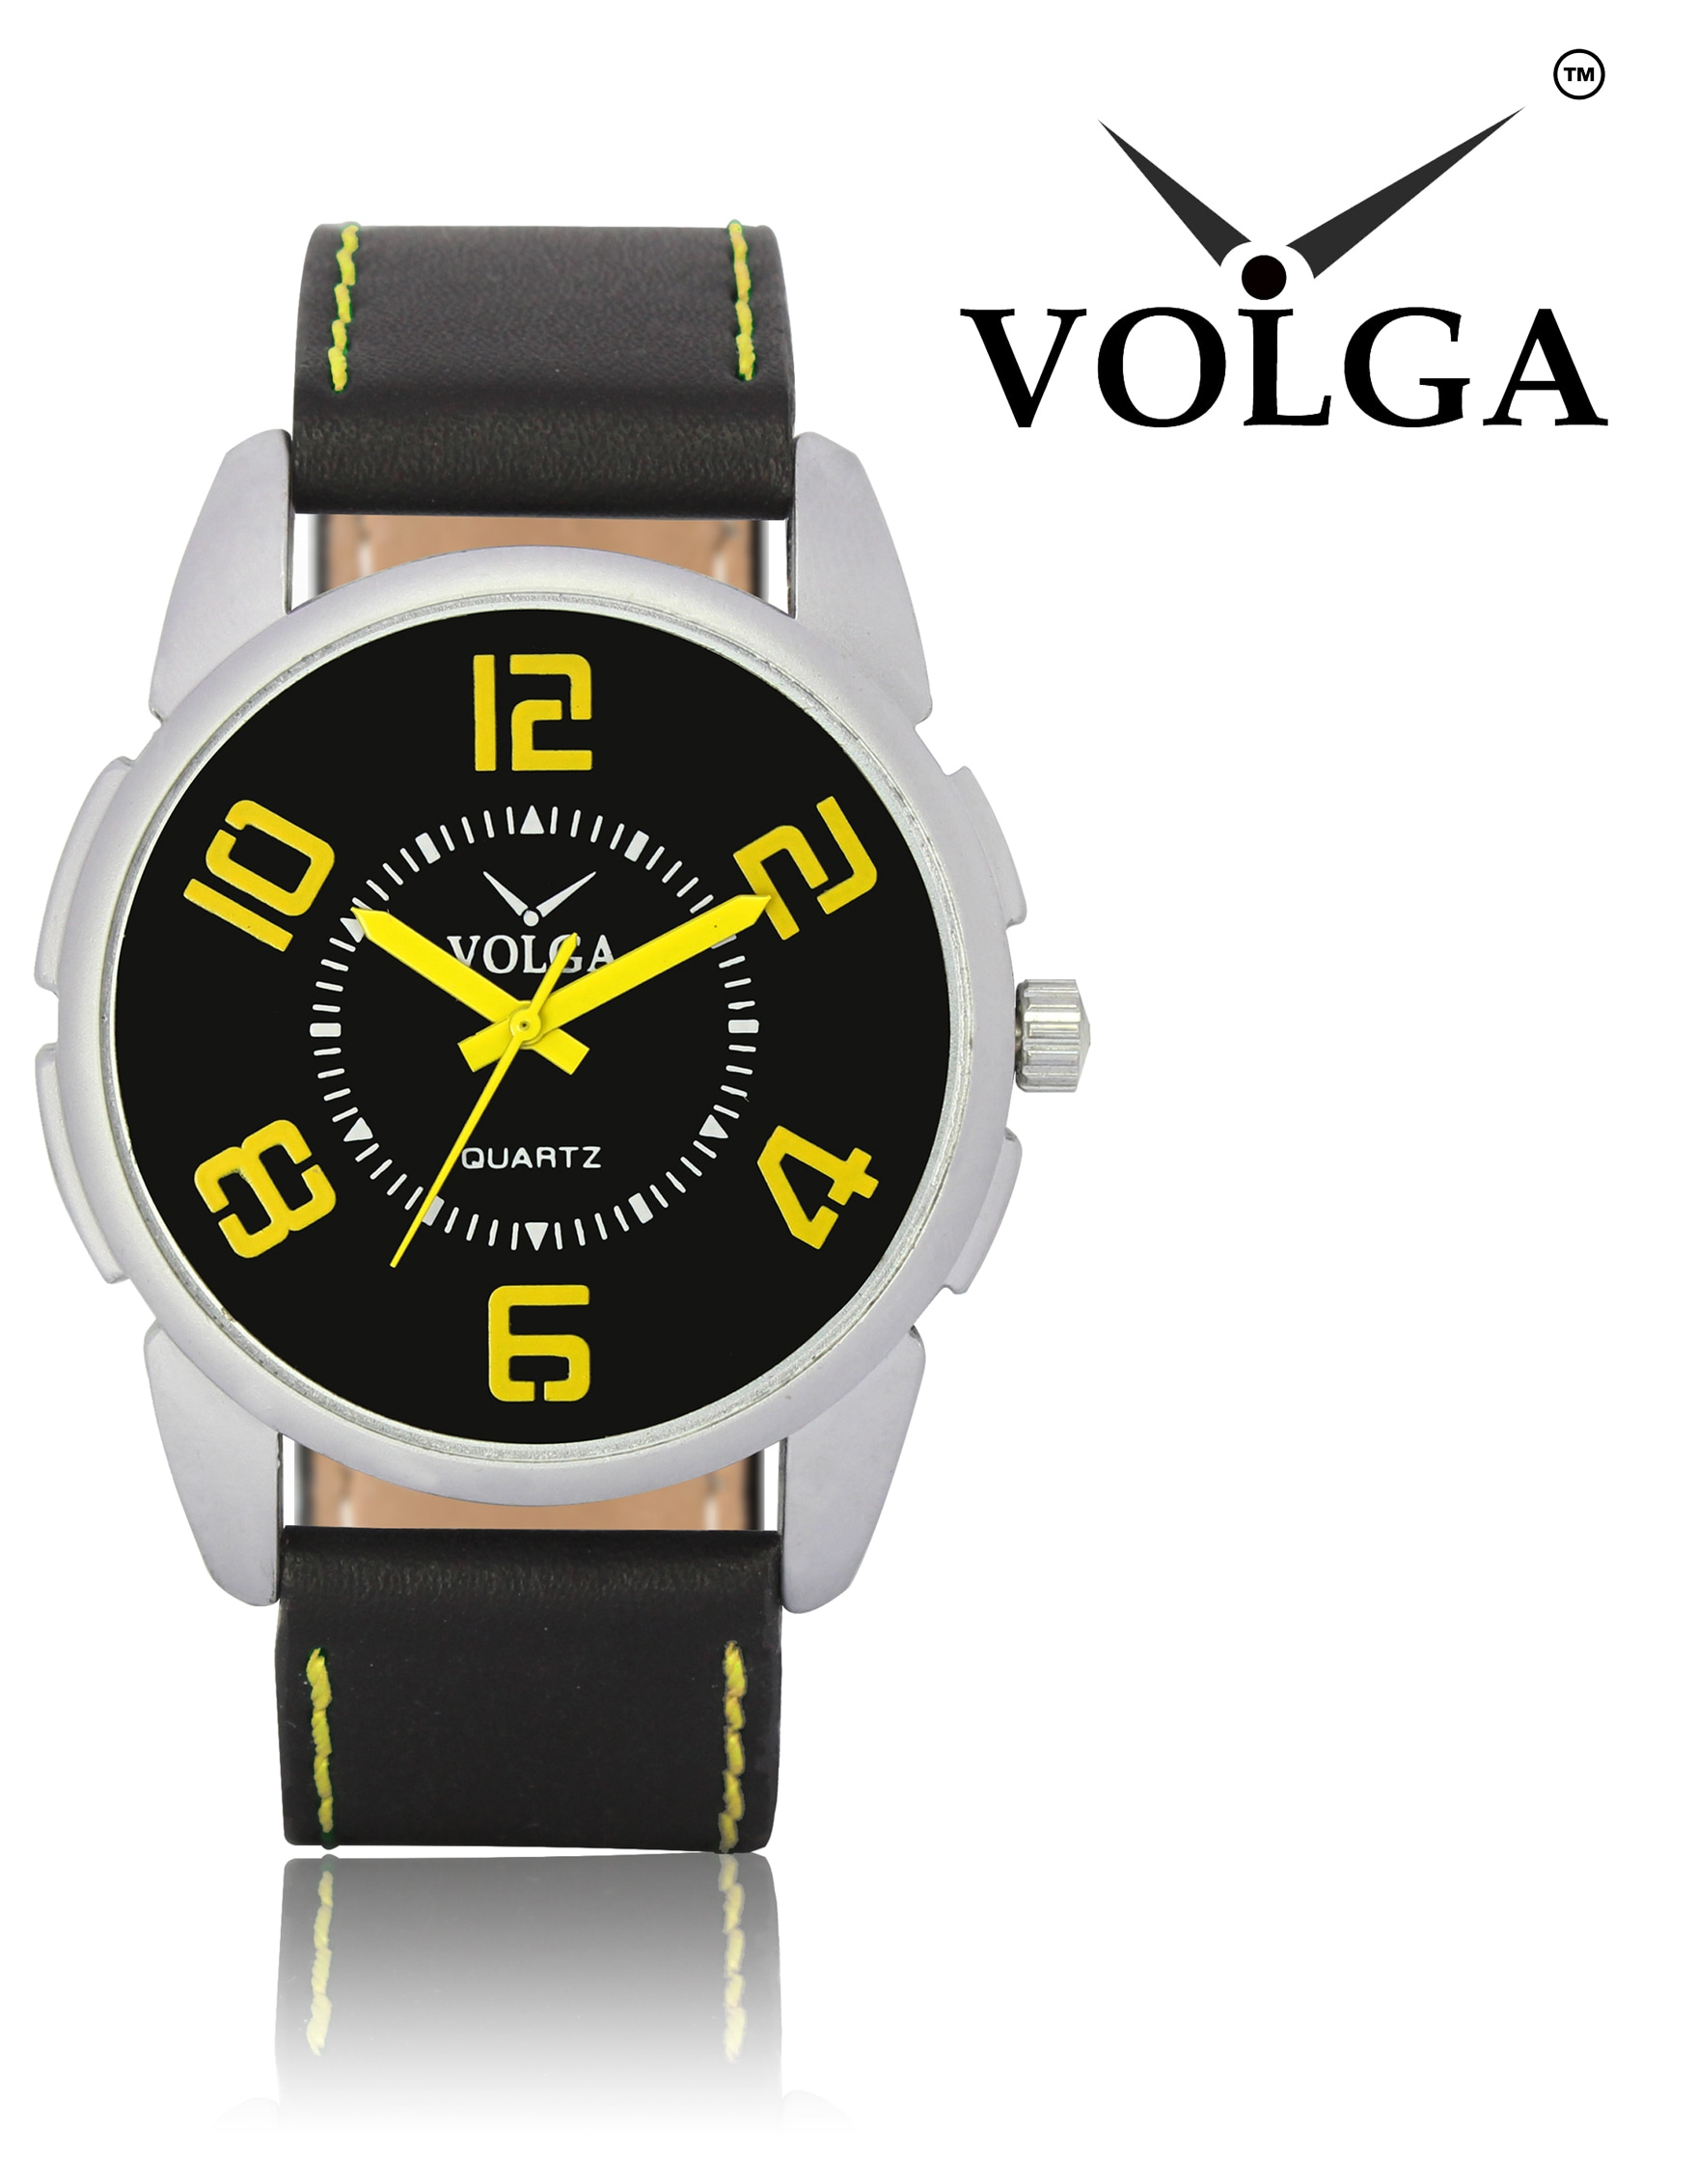 New Arrival Stylish And Professional Analogue Black Dial Black Leather Belt Special Volga Watch For Boys And Men